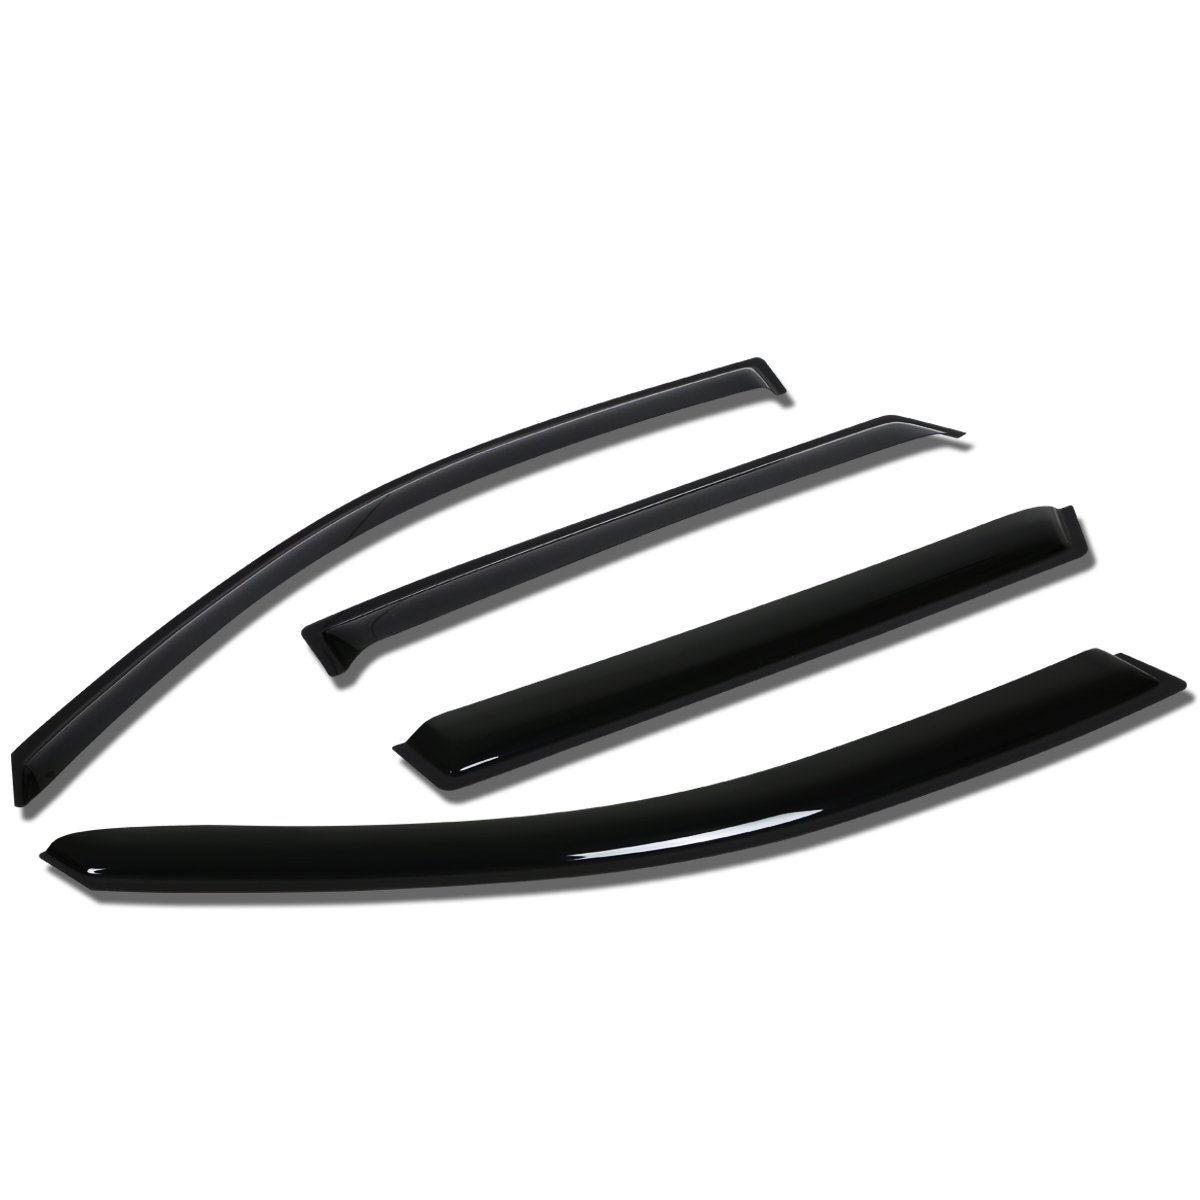 DNA Motoring WVS-080 4pcs Window Vent Visor Deflector Rain Guard Dark Smoke